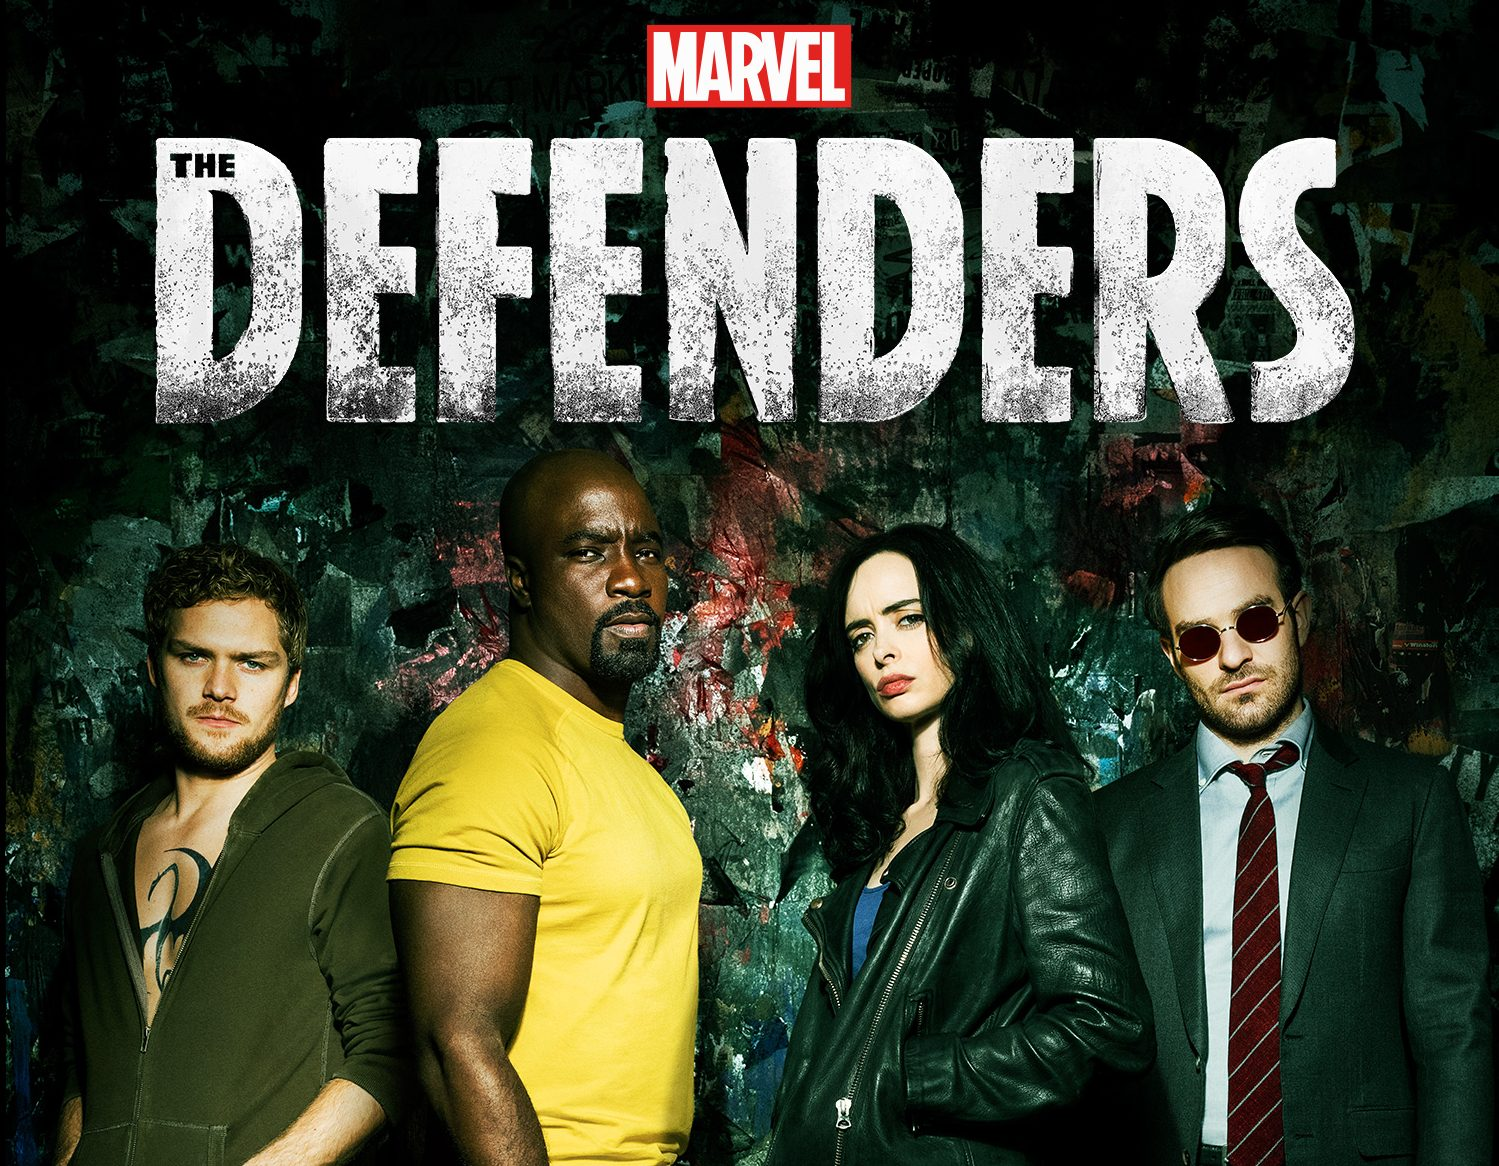 DEFENDERS Vertical Aftermath PRE US e1503770813309 25 Things You Didn't Know About Avengers: Endgame